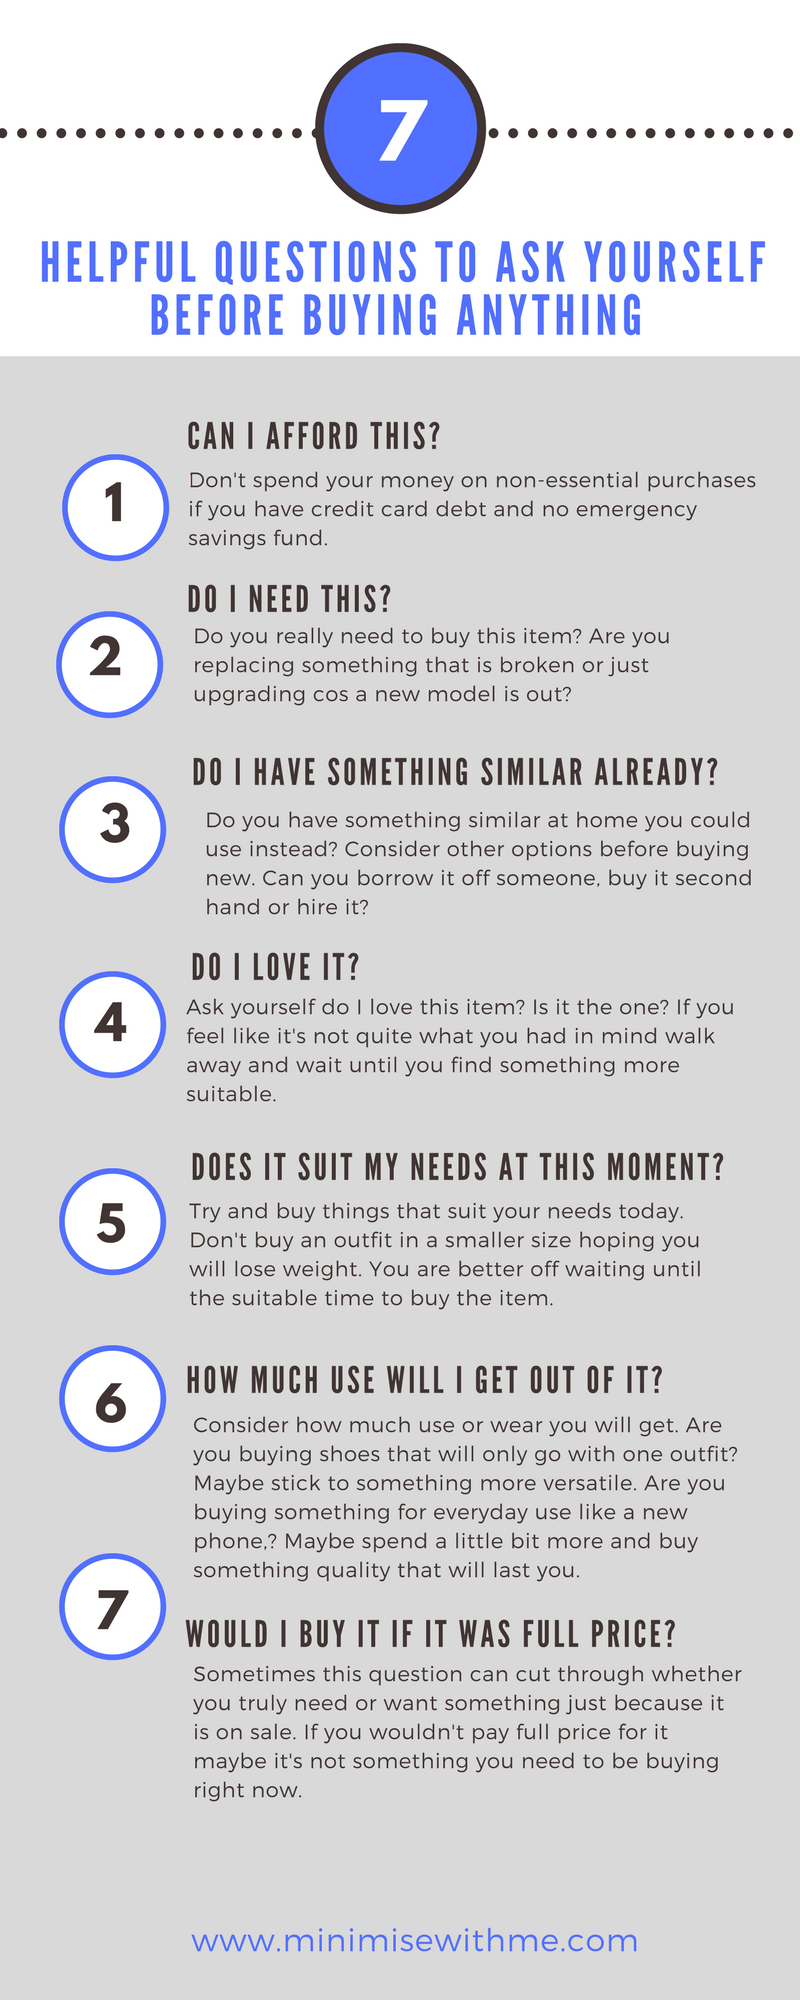 If you are aiming to reduce your impulse spending and limit shopping to more mindful purchases ask yourself these 7 Helpful Questions Before Buying Anything.